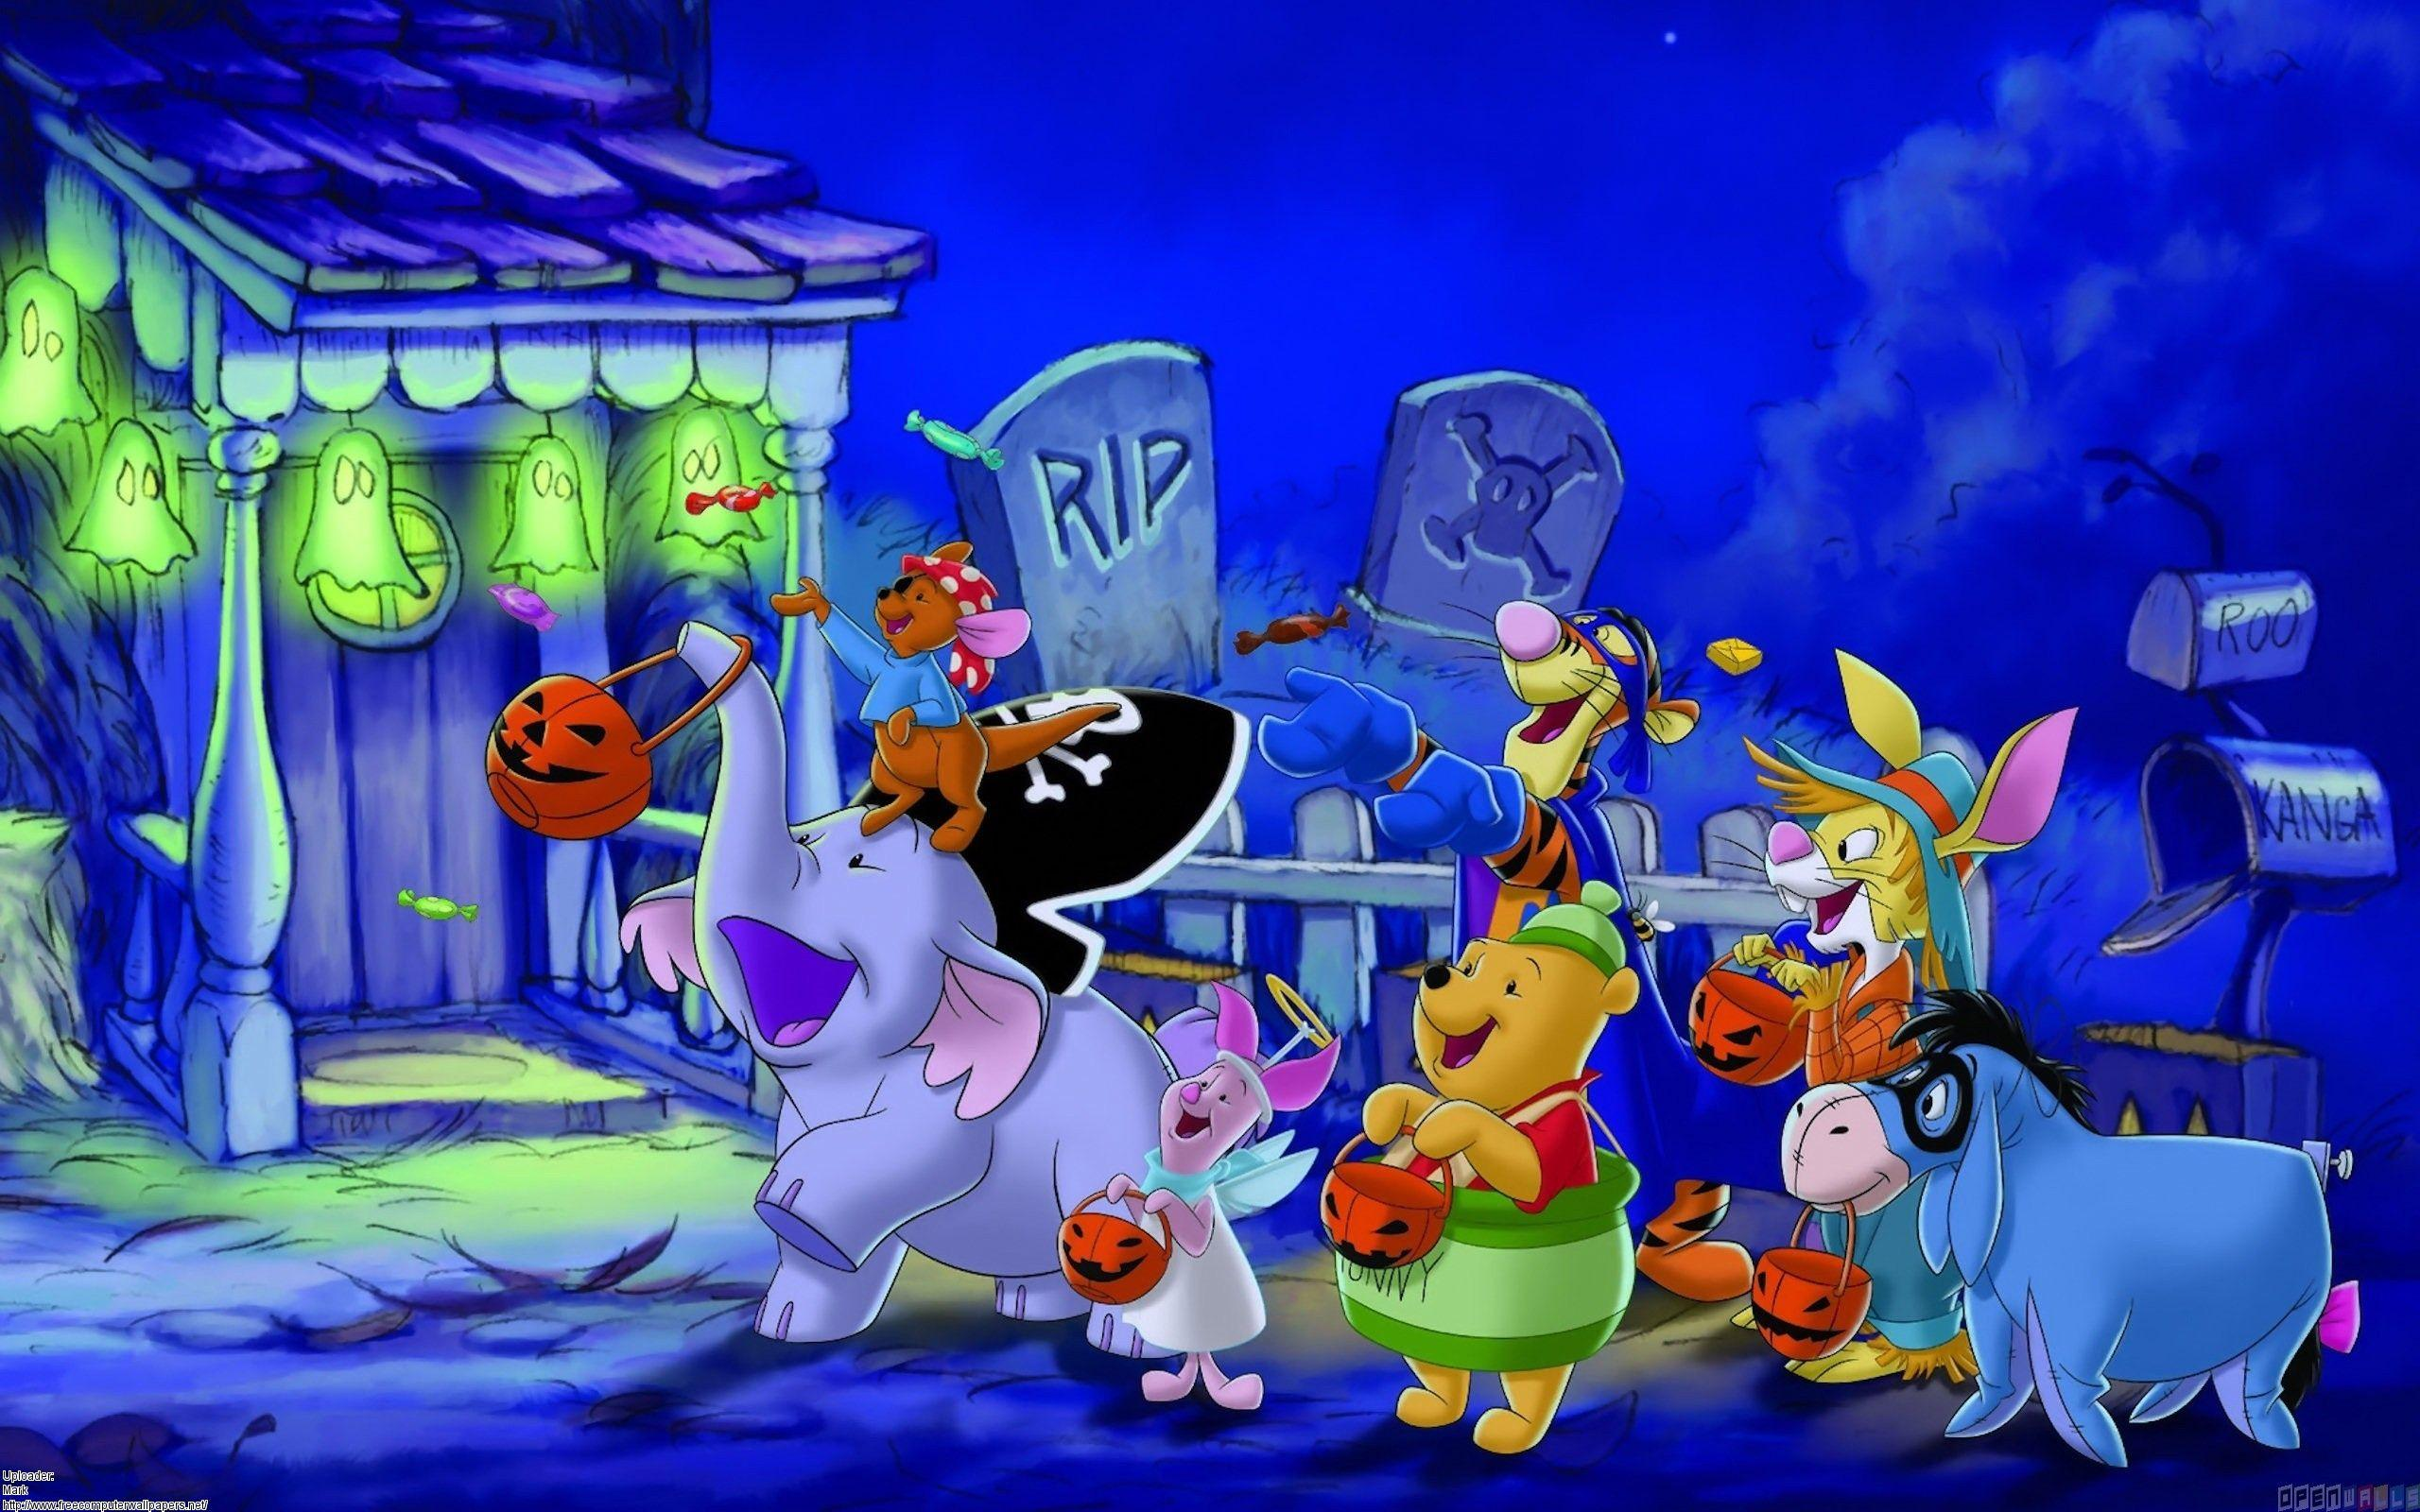 Disney halloween, trick or treating for candy wallpapers